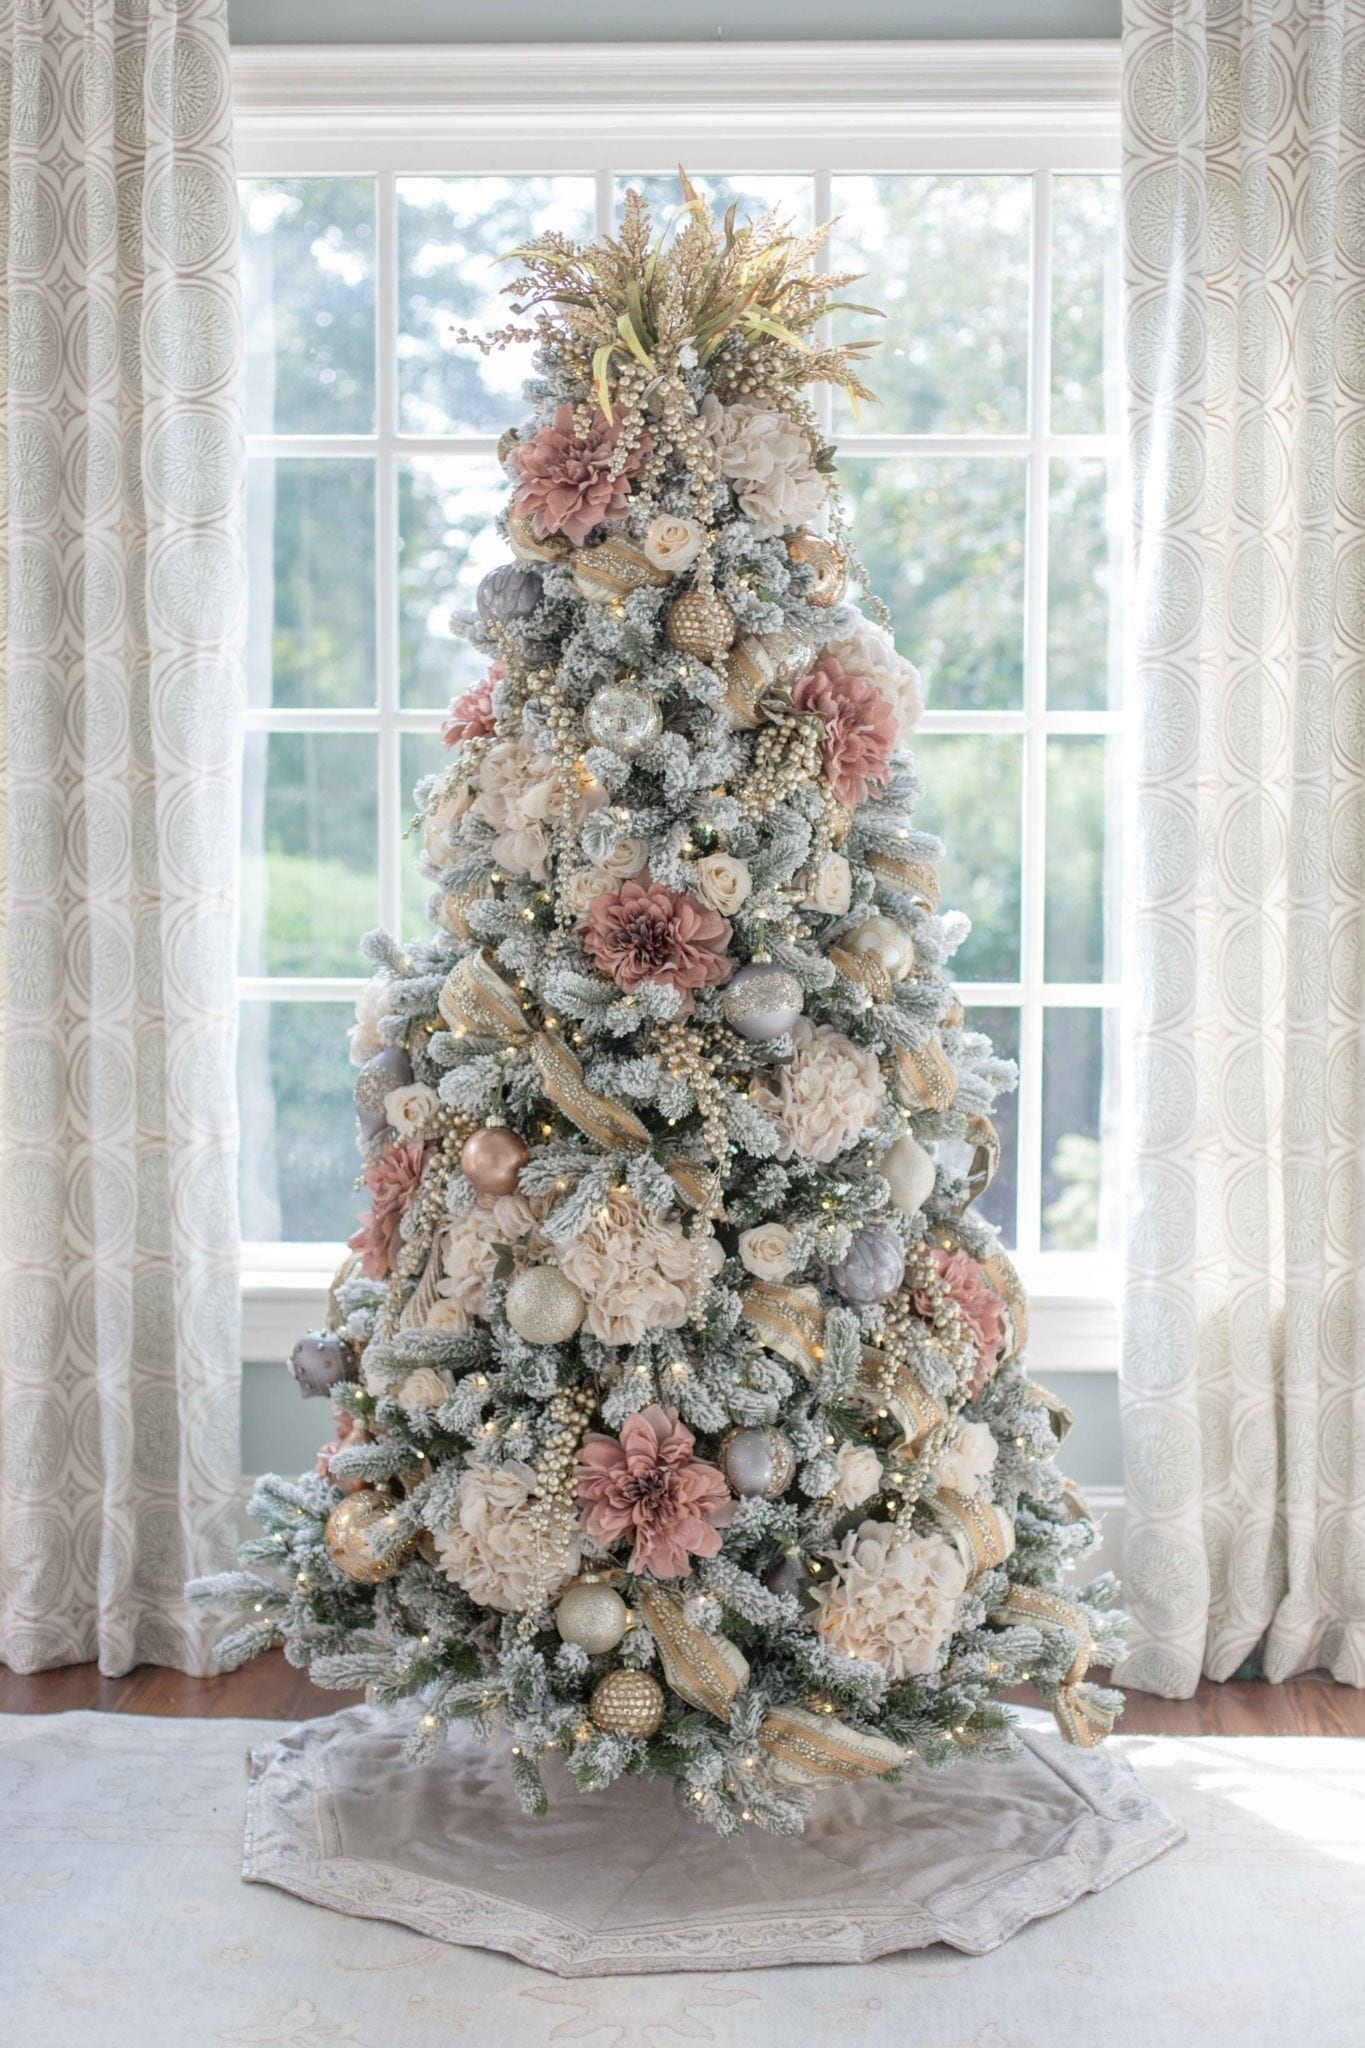 Pink and Gold Christmas Tree. A Christmas tree decorated with fake flowers. Rustic dried heather makes a unique Christmas tree topper and this King of Christmas flocked Christmas tree looks stunning. A non-traditional Christmas tree color! More how to decorate Christmas tree posts coming very soon!